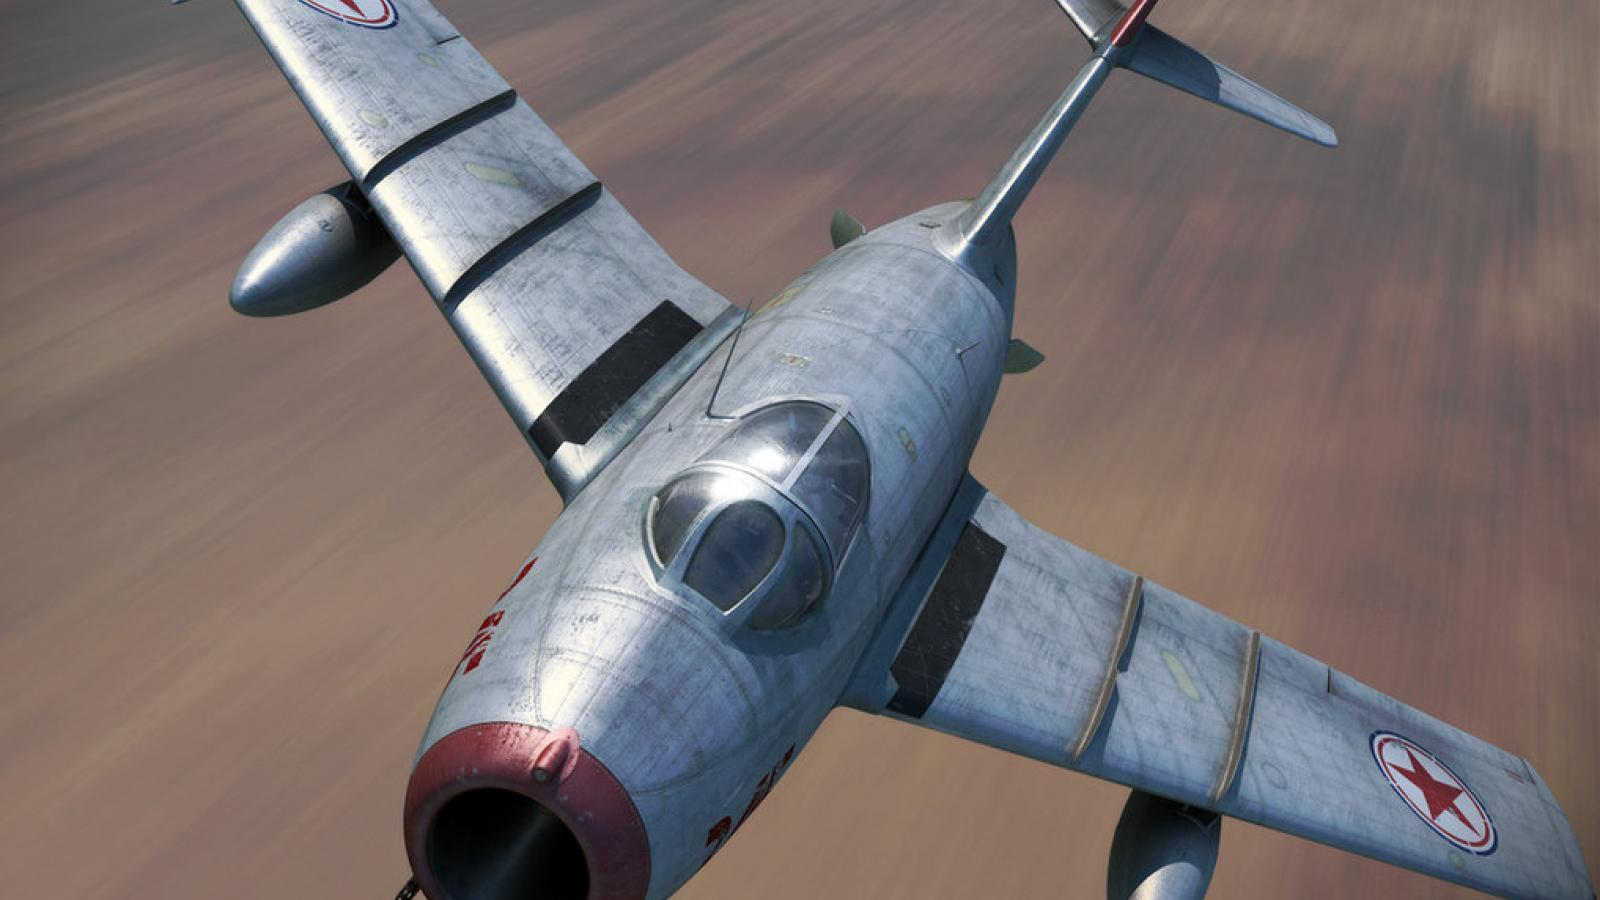 Splendid 3D Fighter Jets by Anders Lejczak